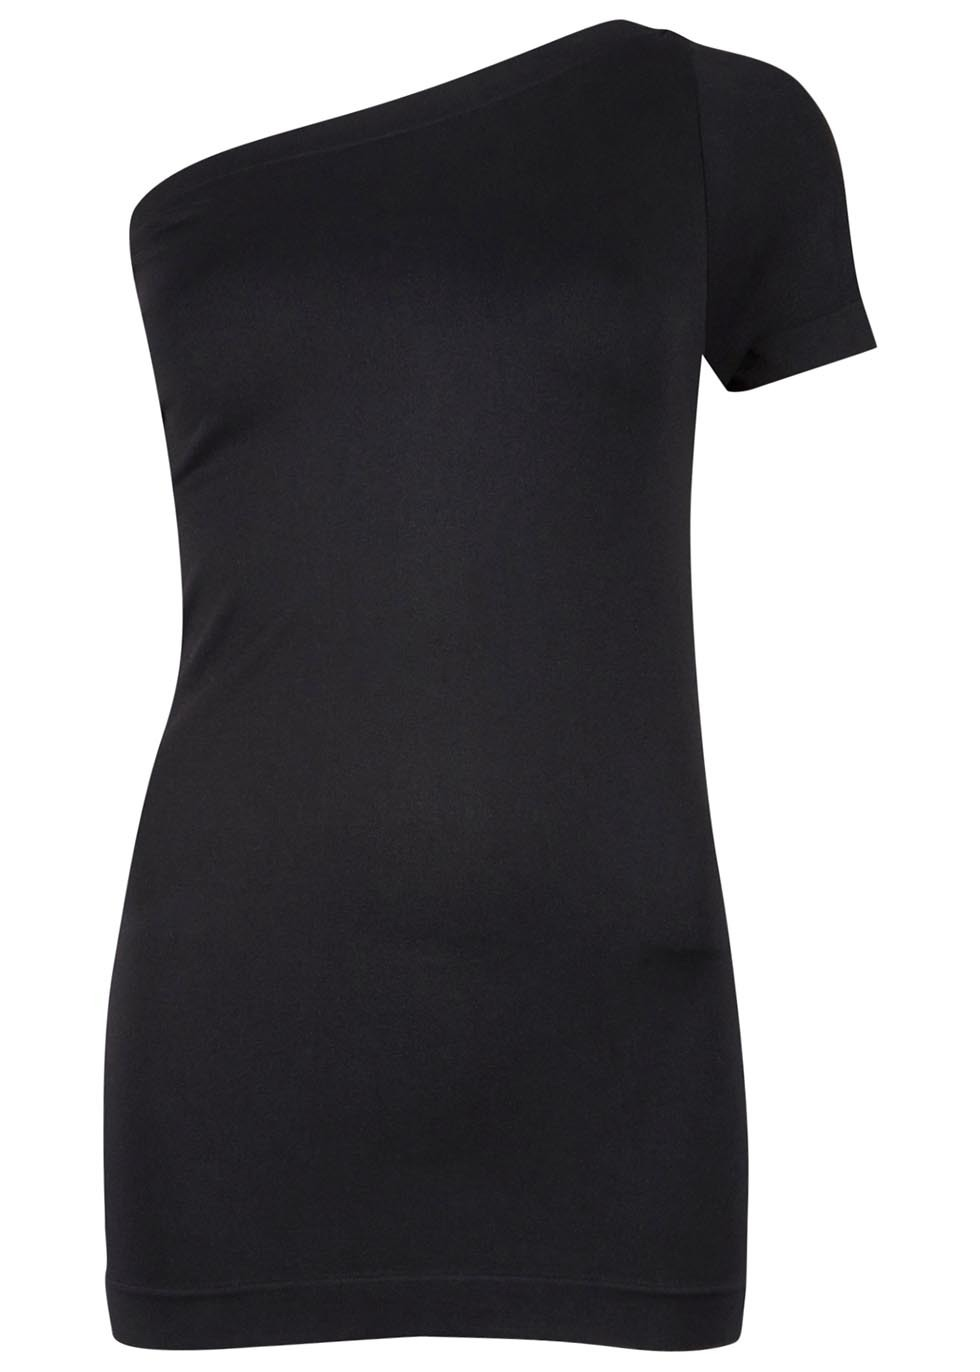 Black One Shoulder Stretch Jersey Top - pattern: plain; neckline: asymmetric; predominant colour: black; occasions: casual; length: standard; style: top; fit: body skimming; sleeve length: short sleeve; sleeve style: standard; pattern type: fabric; texture group: jersey - stretchy/drapey; fibres: nylon - stretch; season: s/s 2016; wardrobe: basic